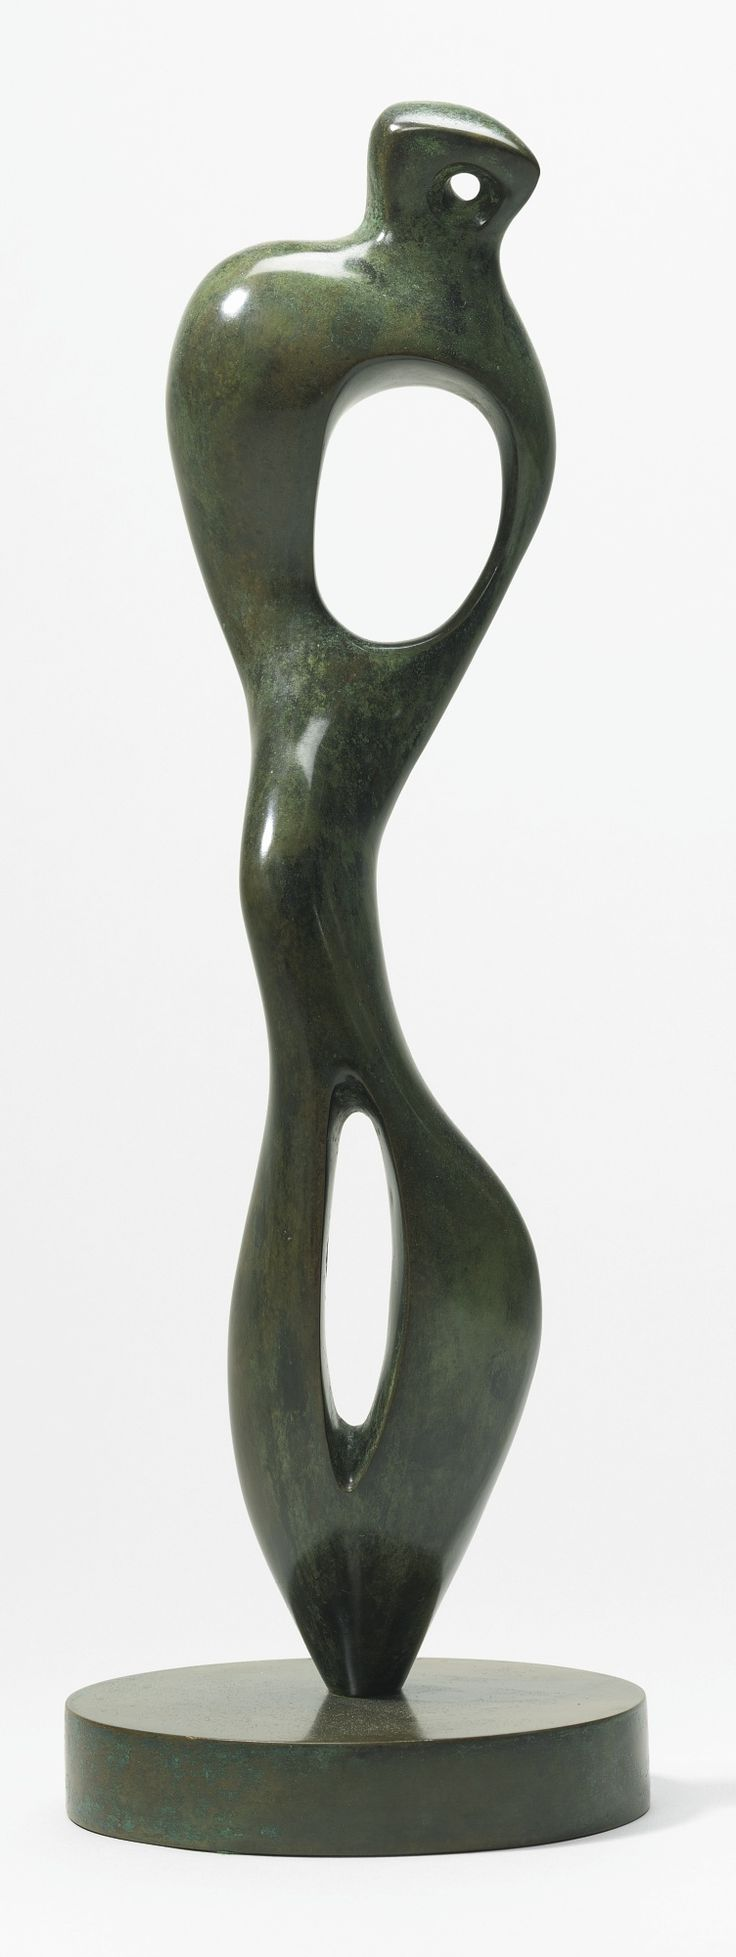 Henry Moore, Interior Form